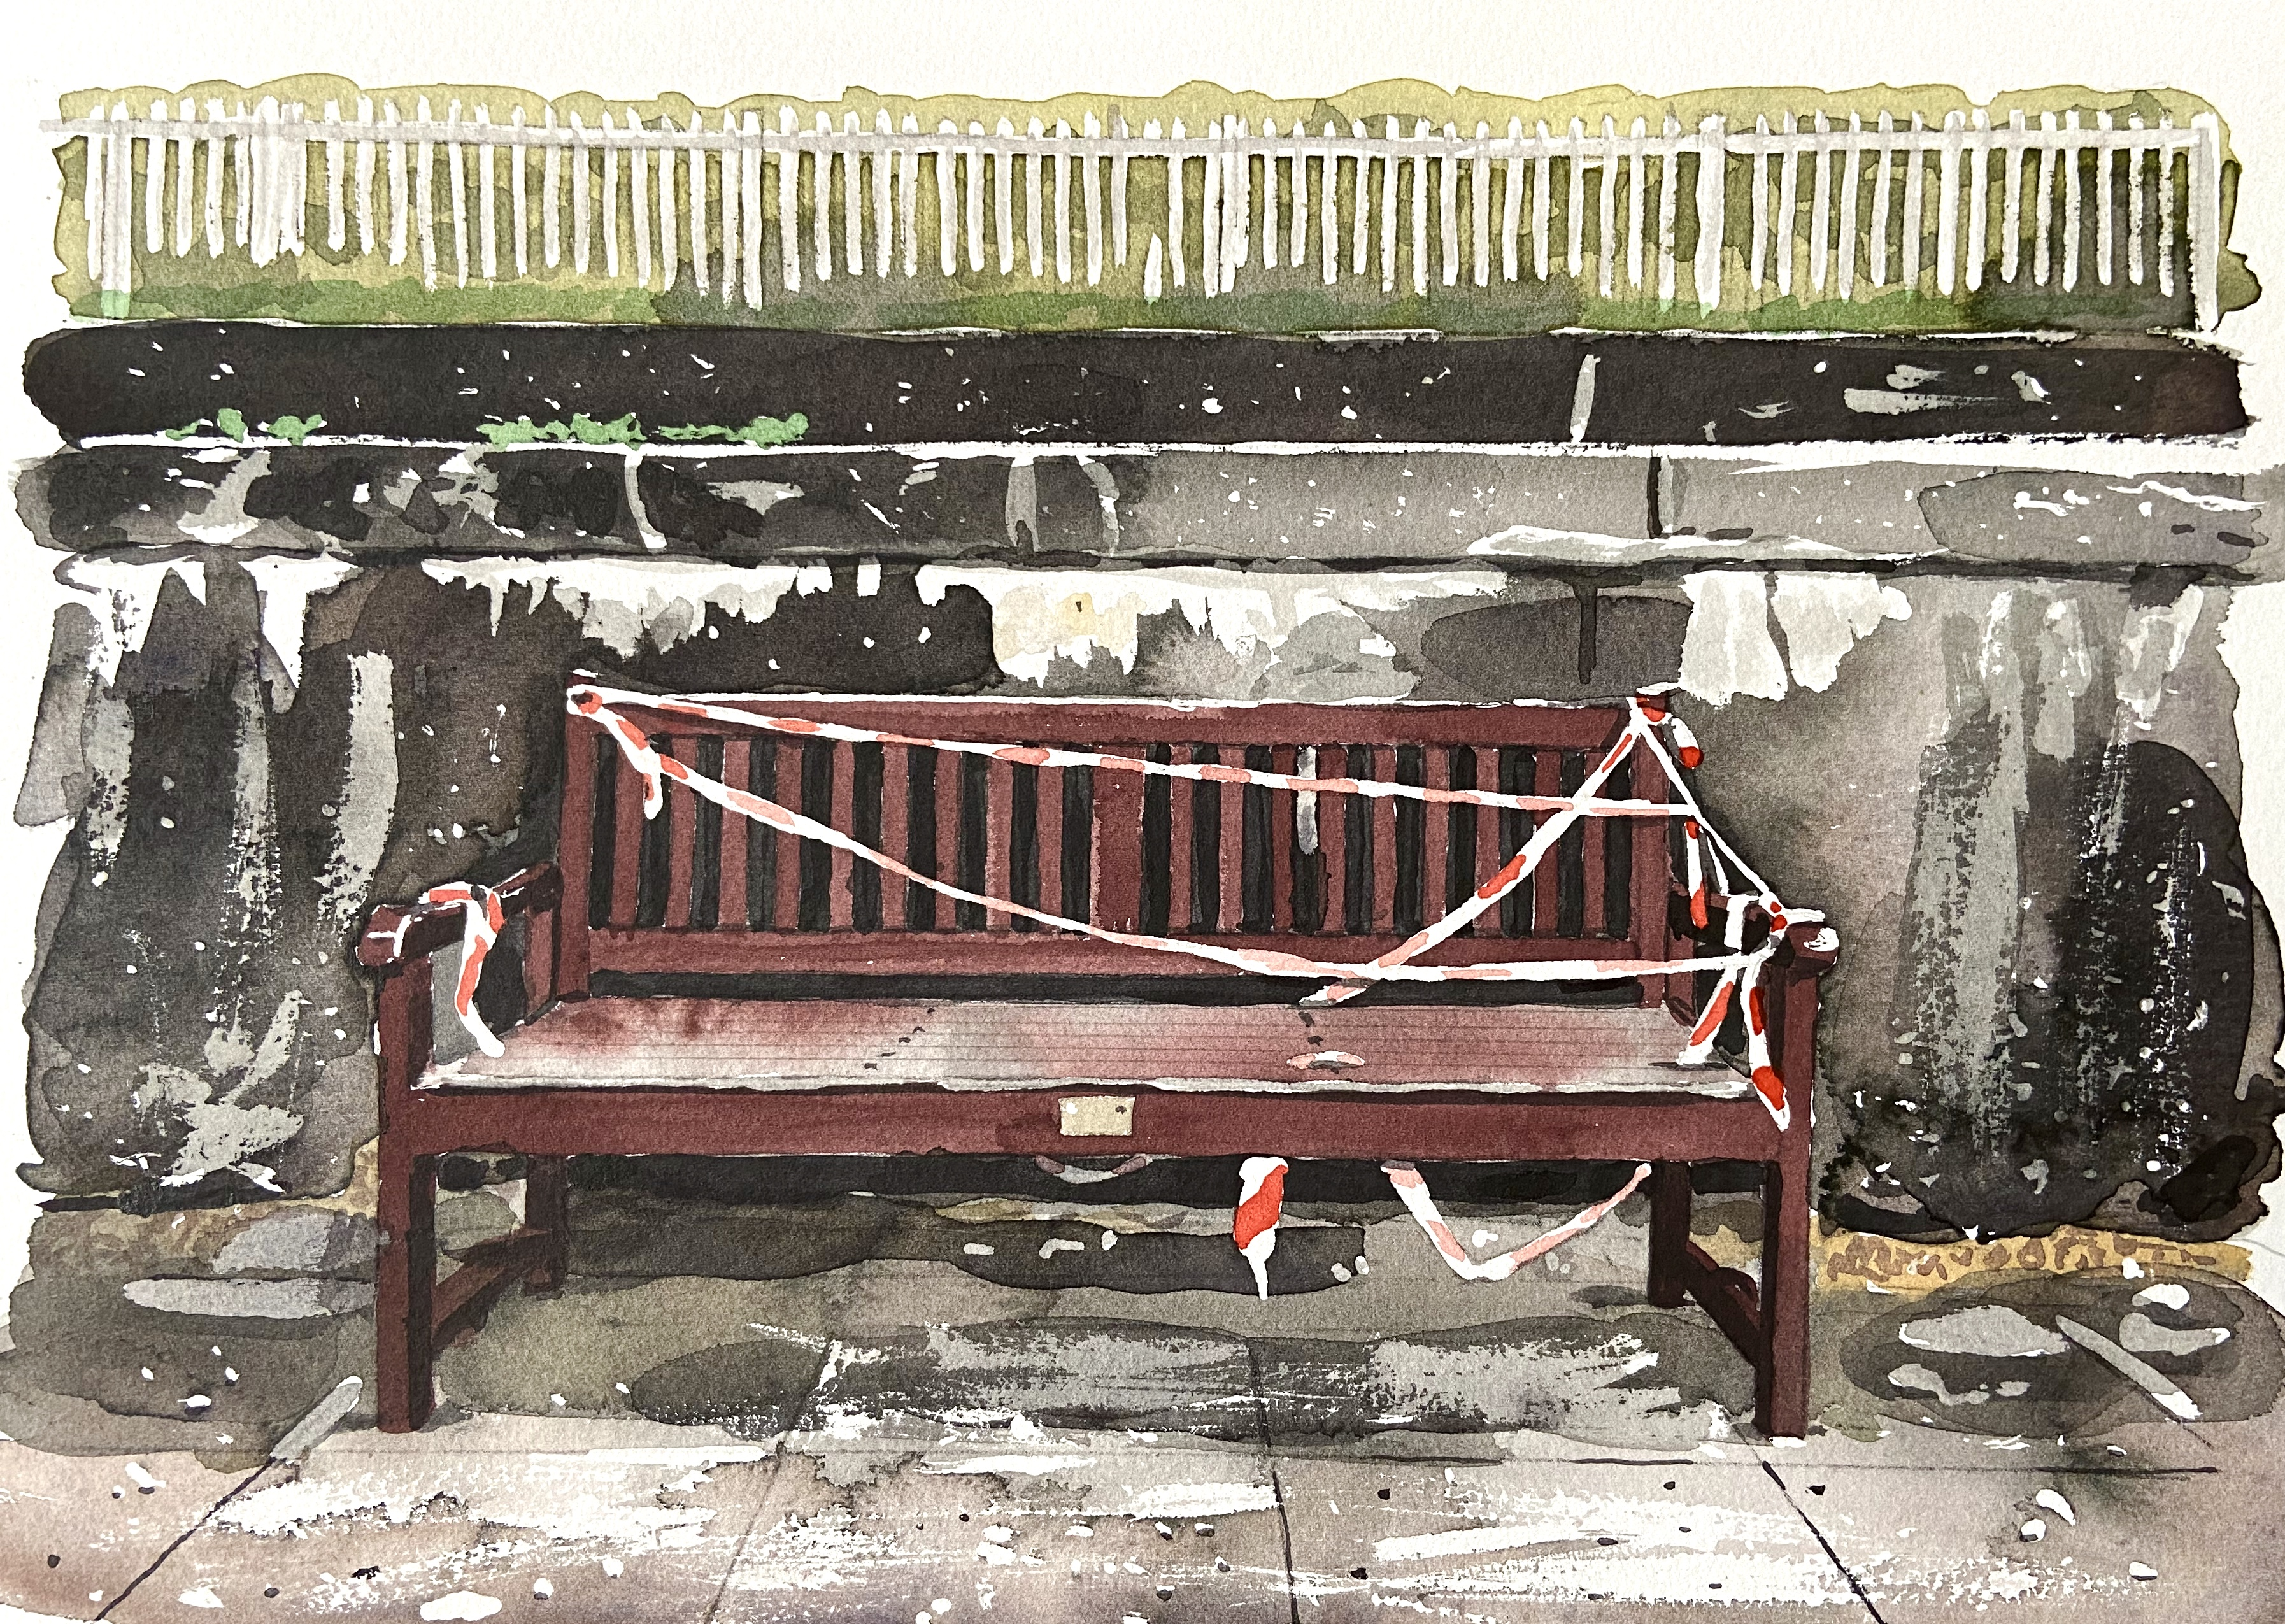 Untitled (Bench) 7